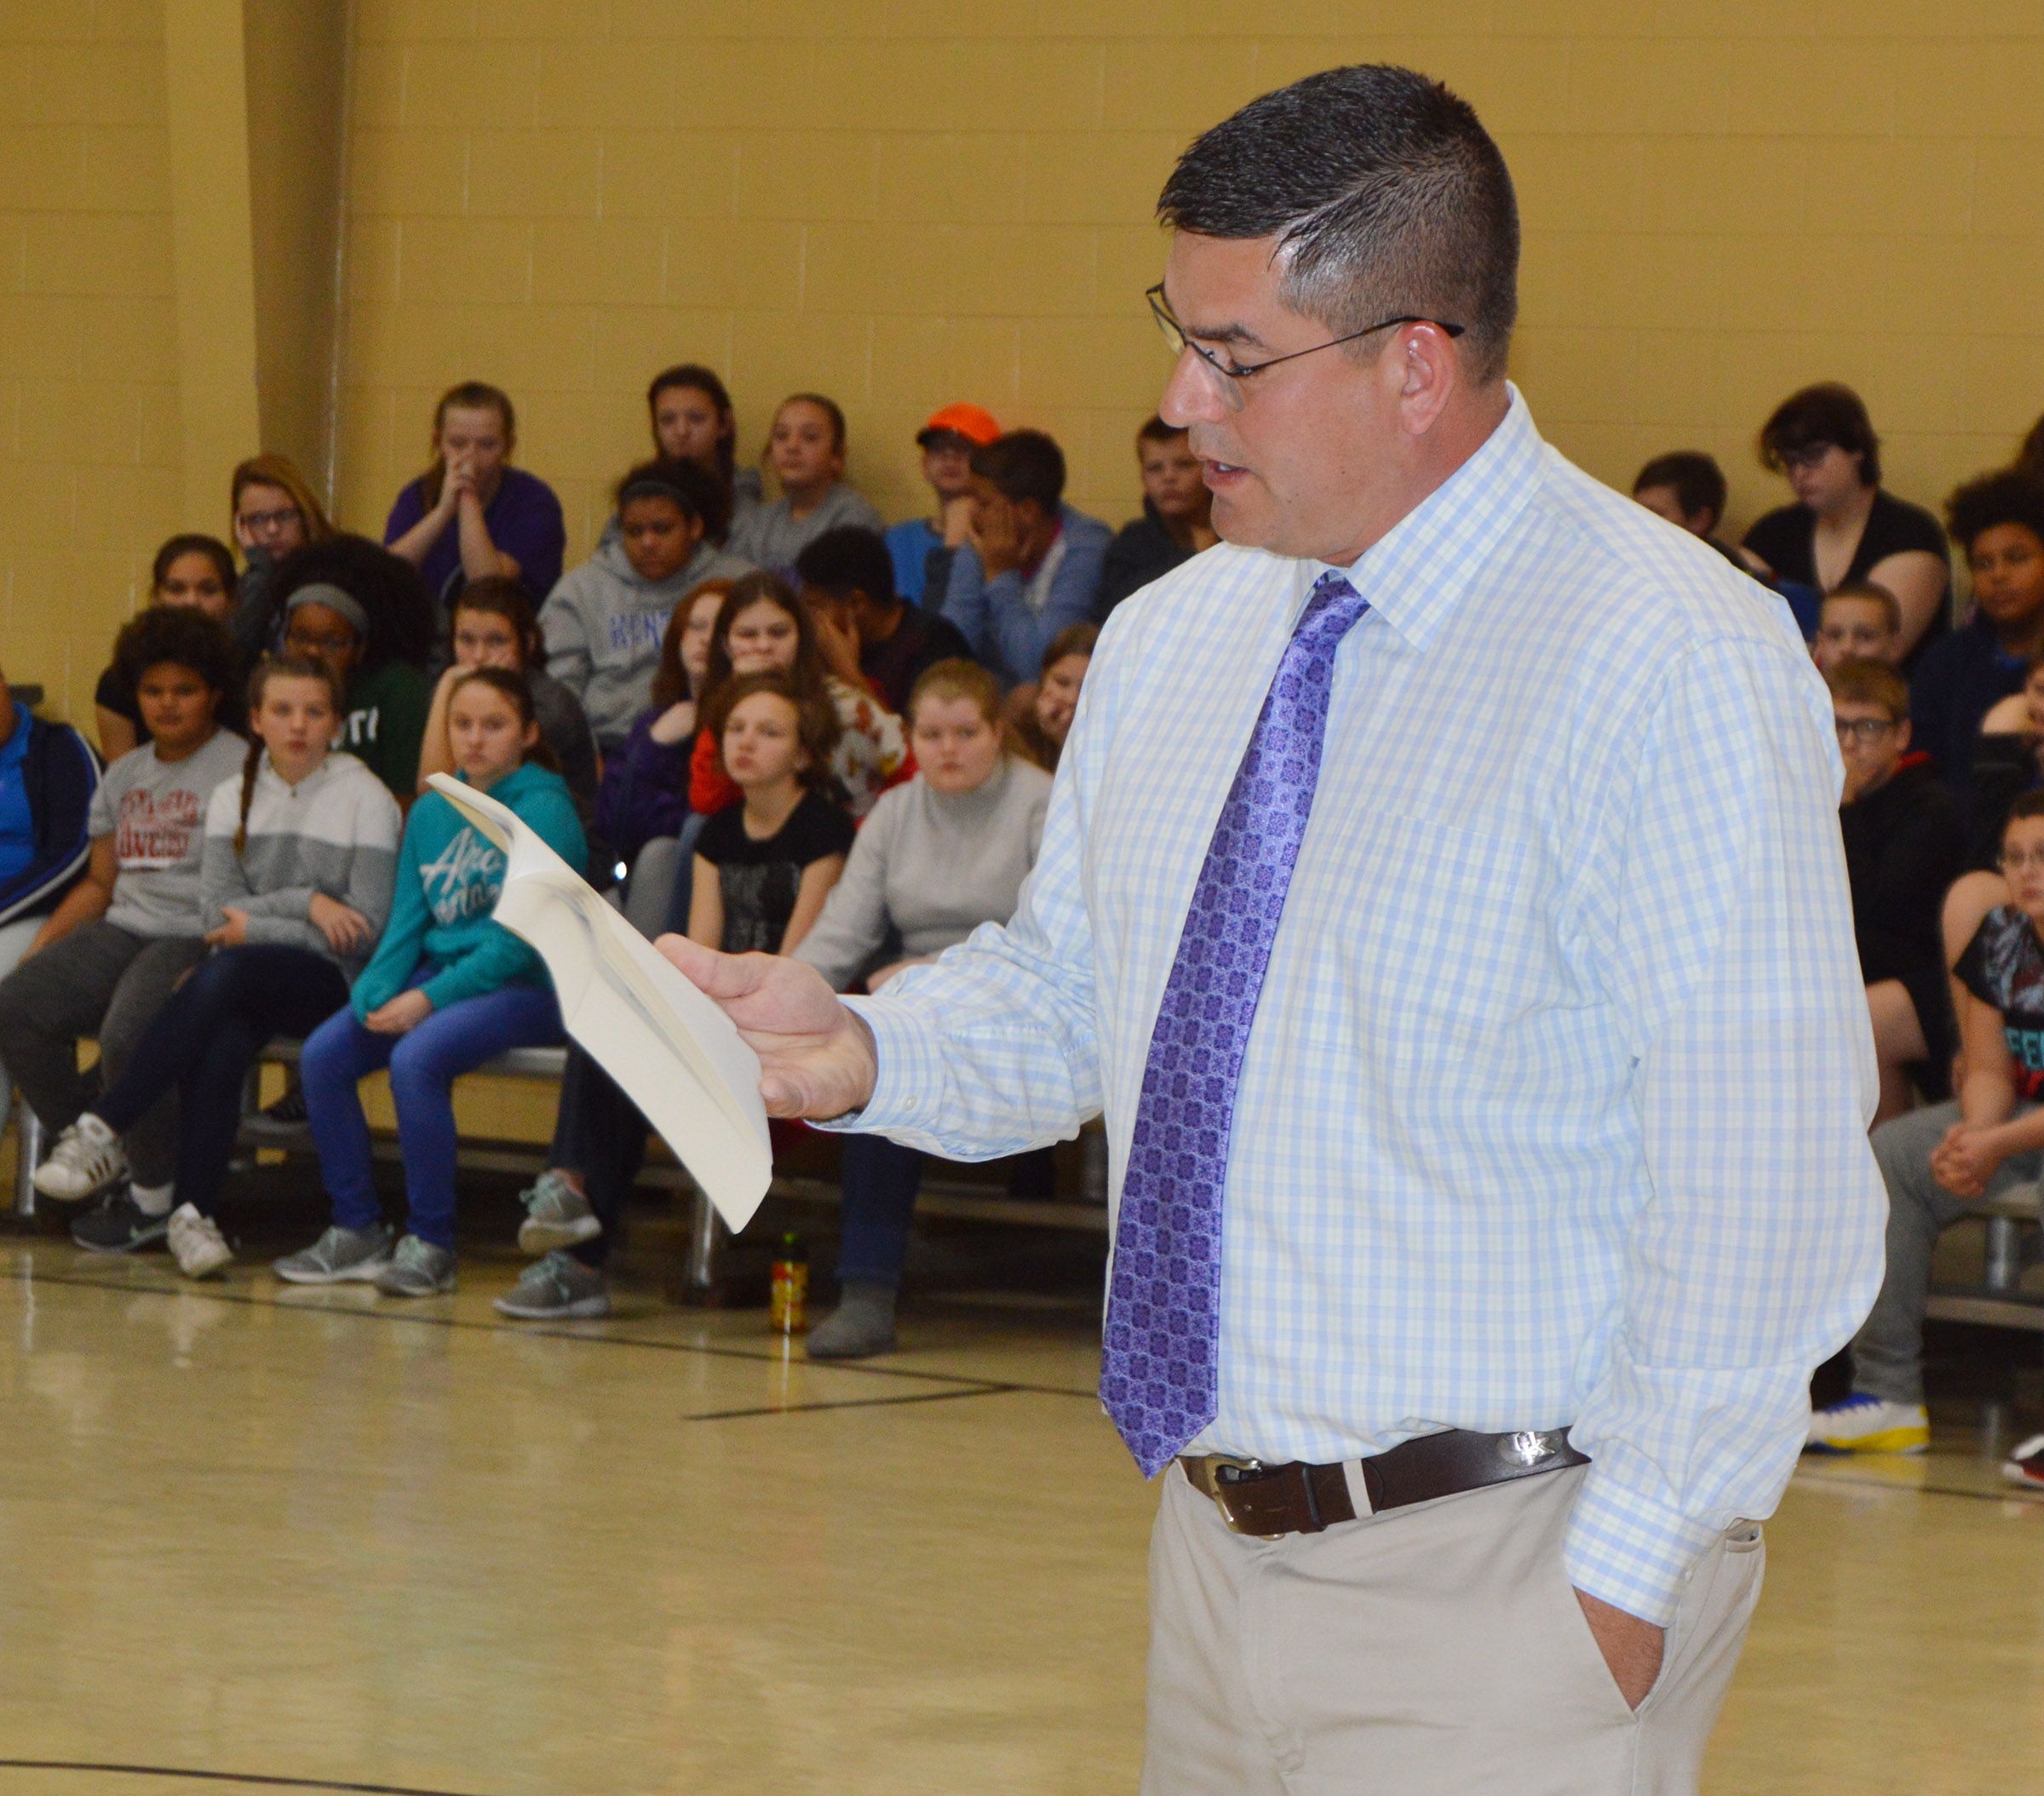 Campbellsville Independent Schools Superintendent Kirby Smith reads to CMS students one of his favorite quotes.